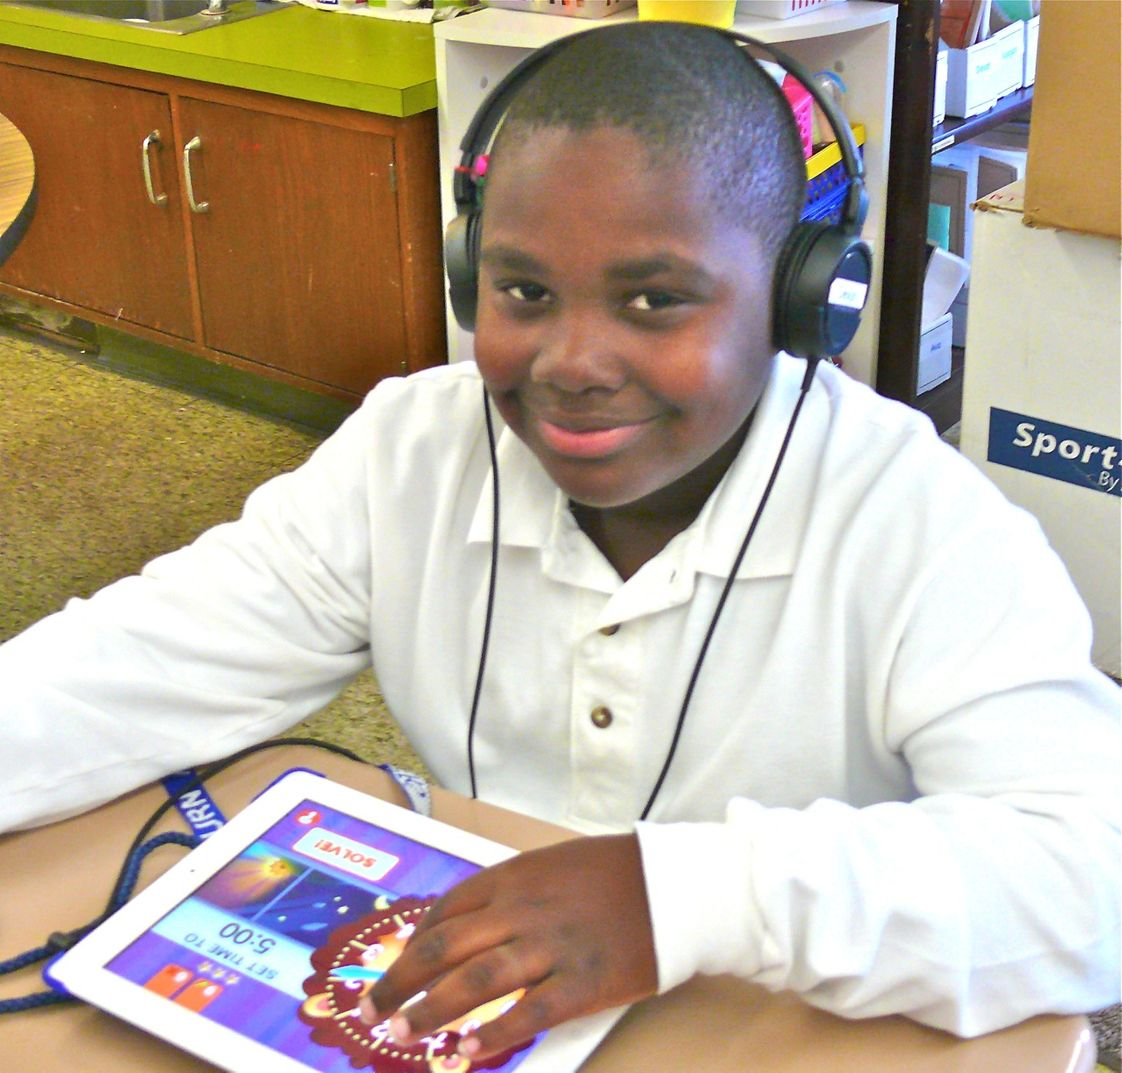 Marburn Academy Photo - Lower Division students use iPads for reading and language.